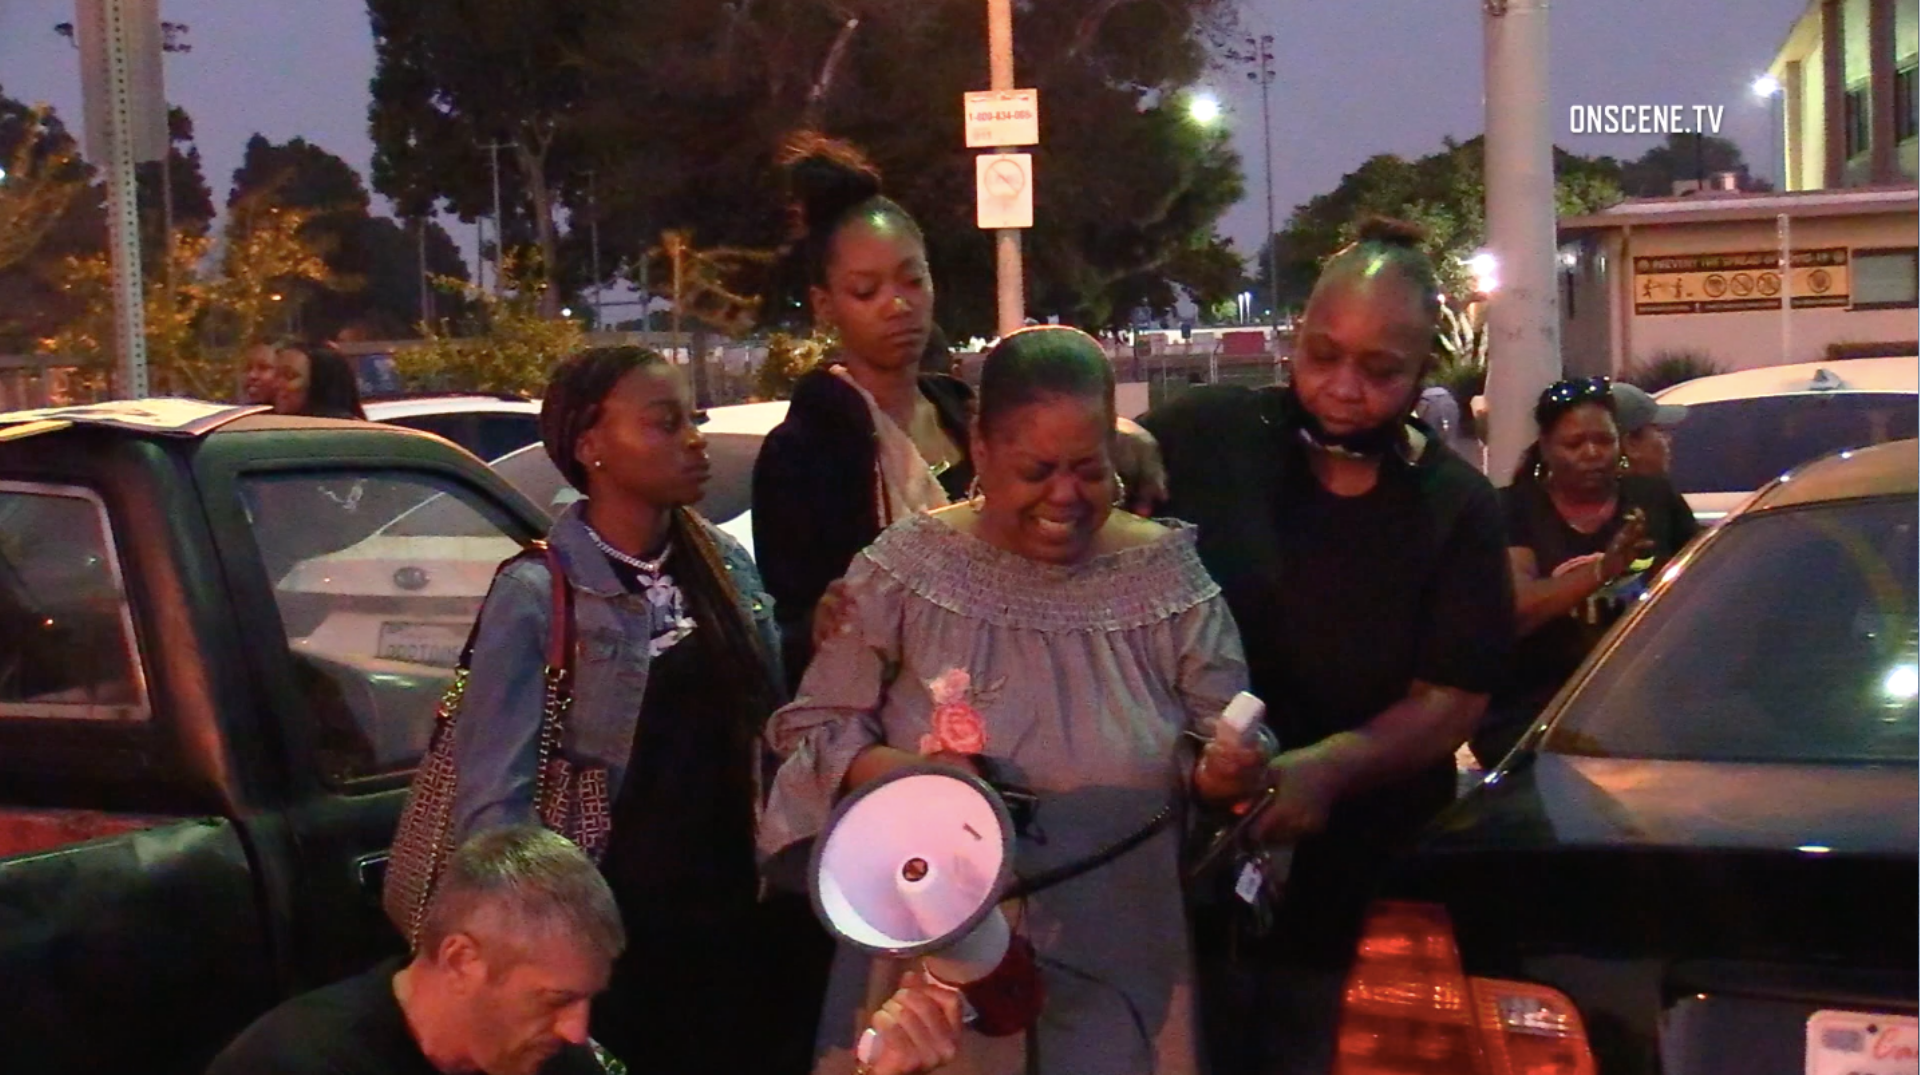 Loved ones of a man shot by an L.A. County sheriff's deputy speak at a rally in Willowbrook on Oct. 18, 2020. They identified the man as Fred Williams. (Onscene.tv)